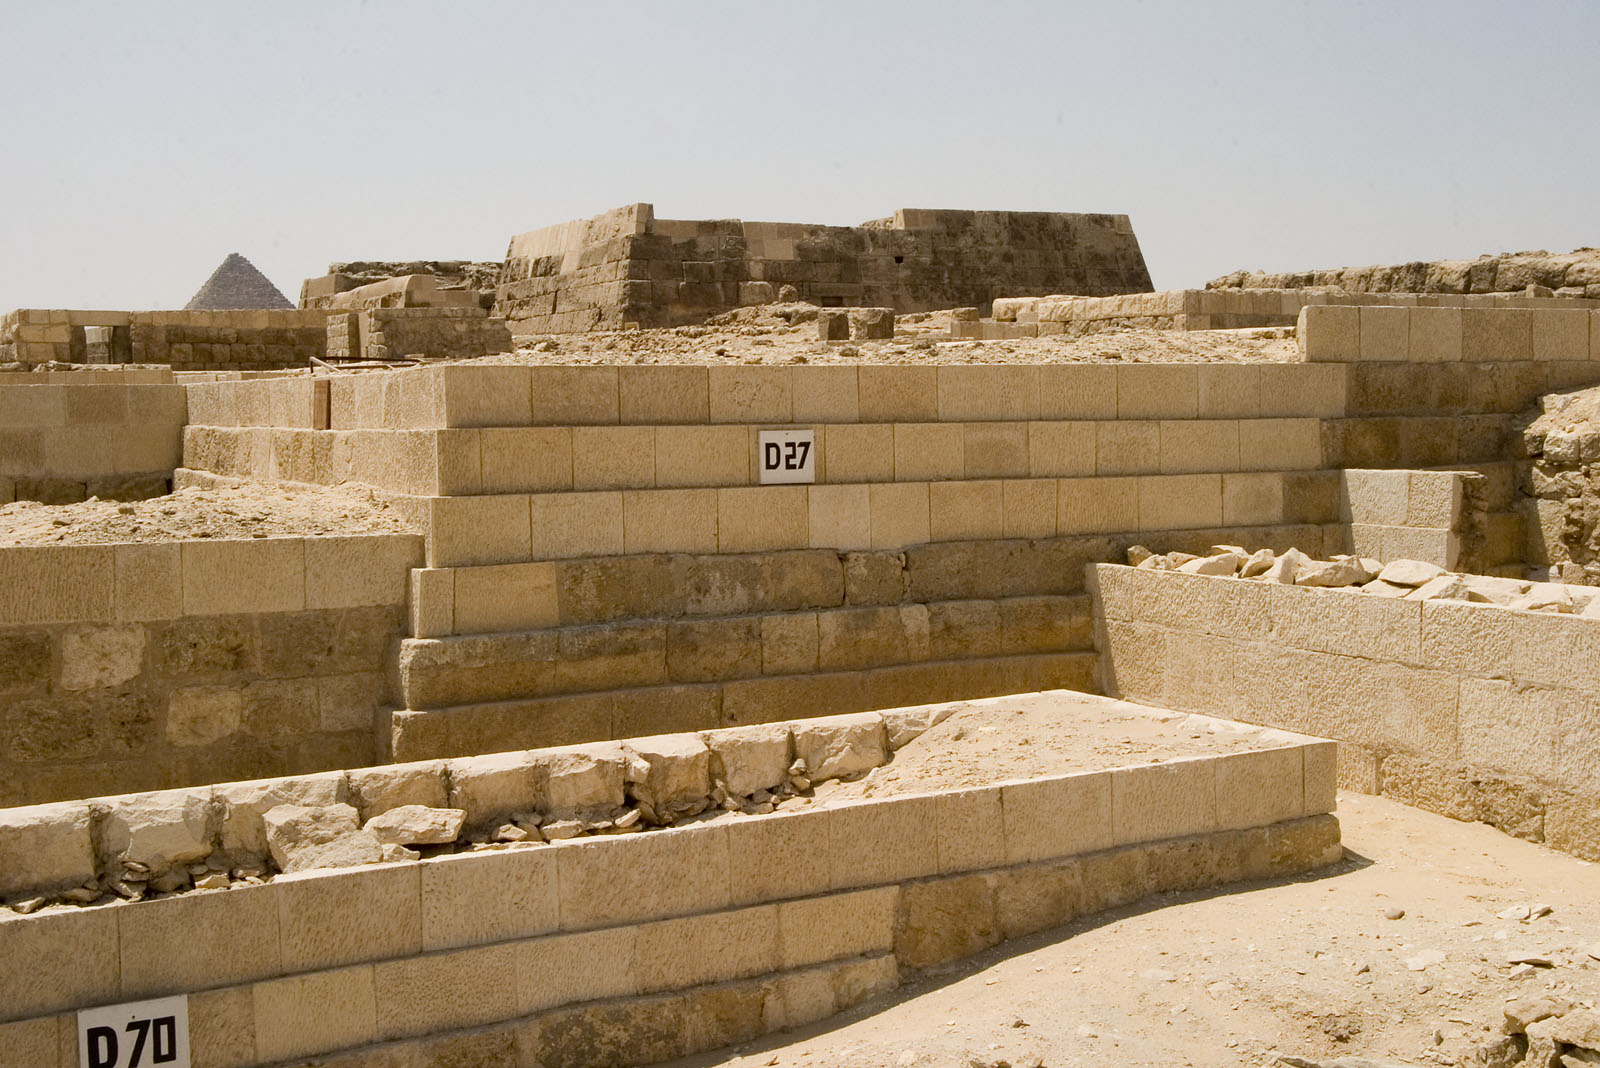 Western Cemetery: Site: Giza; View: D 70, D 27